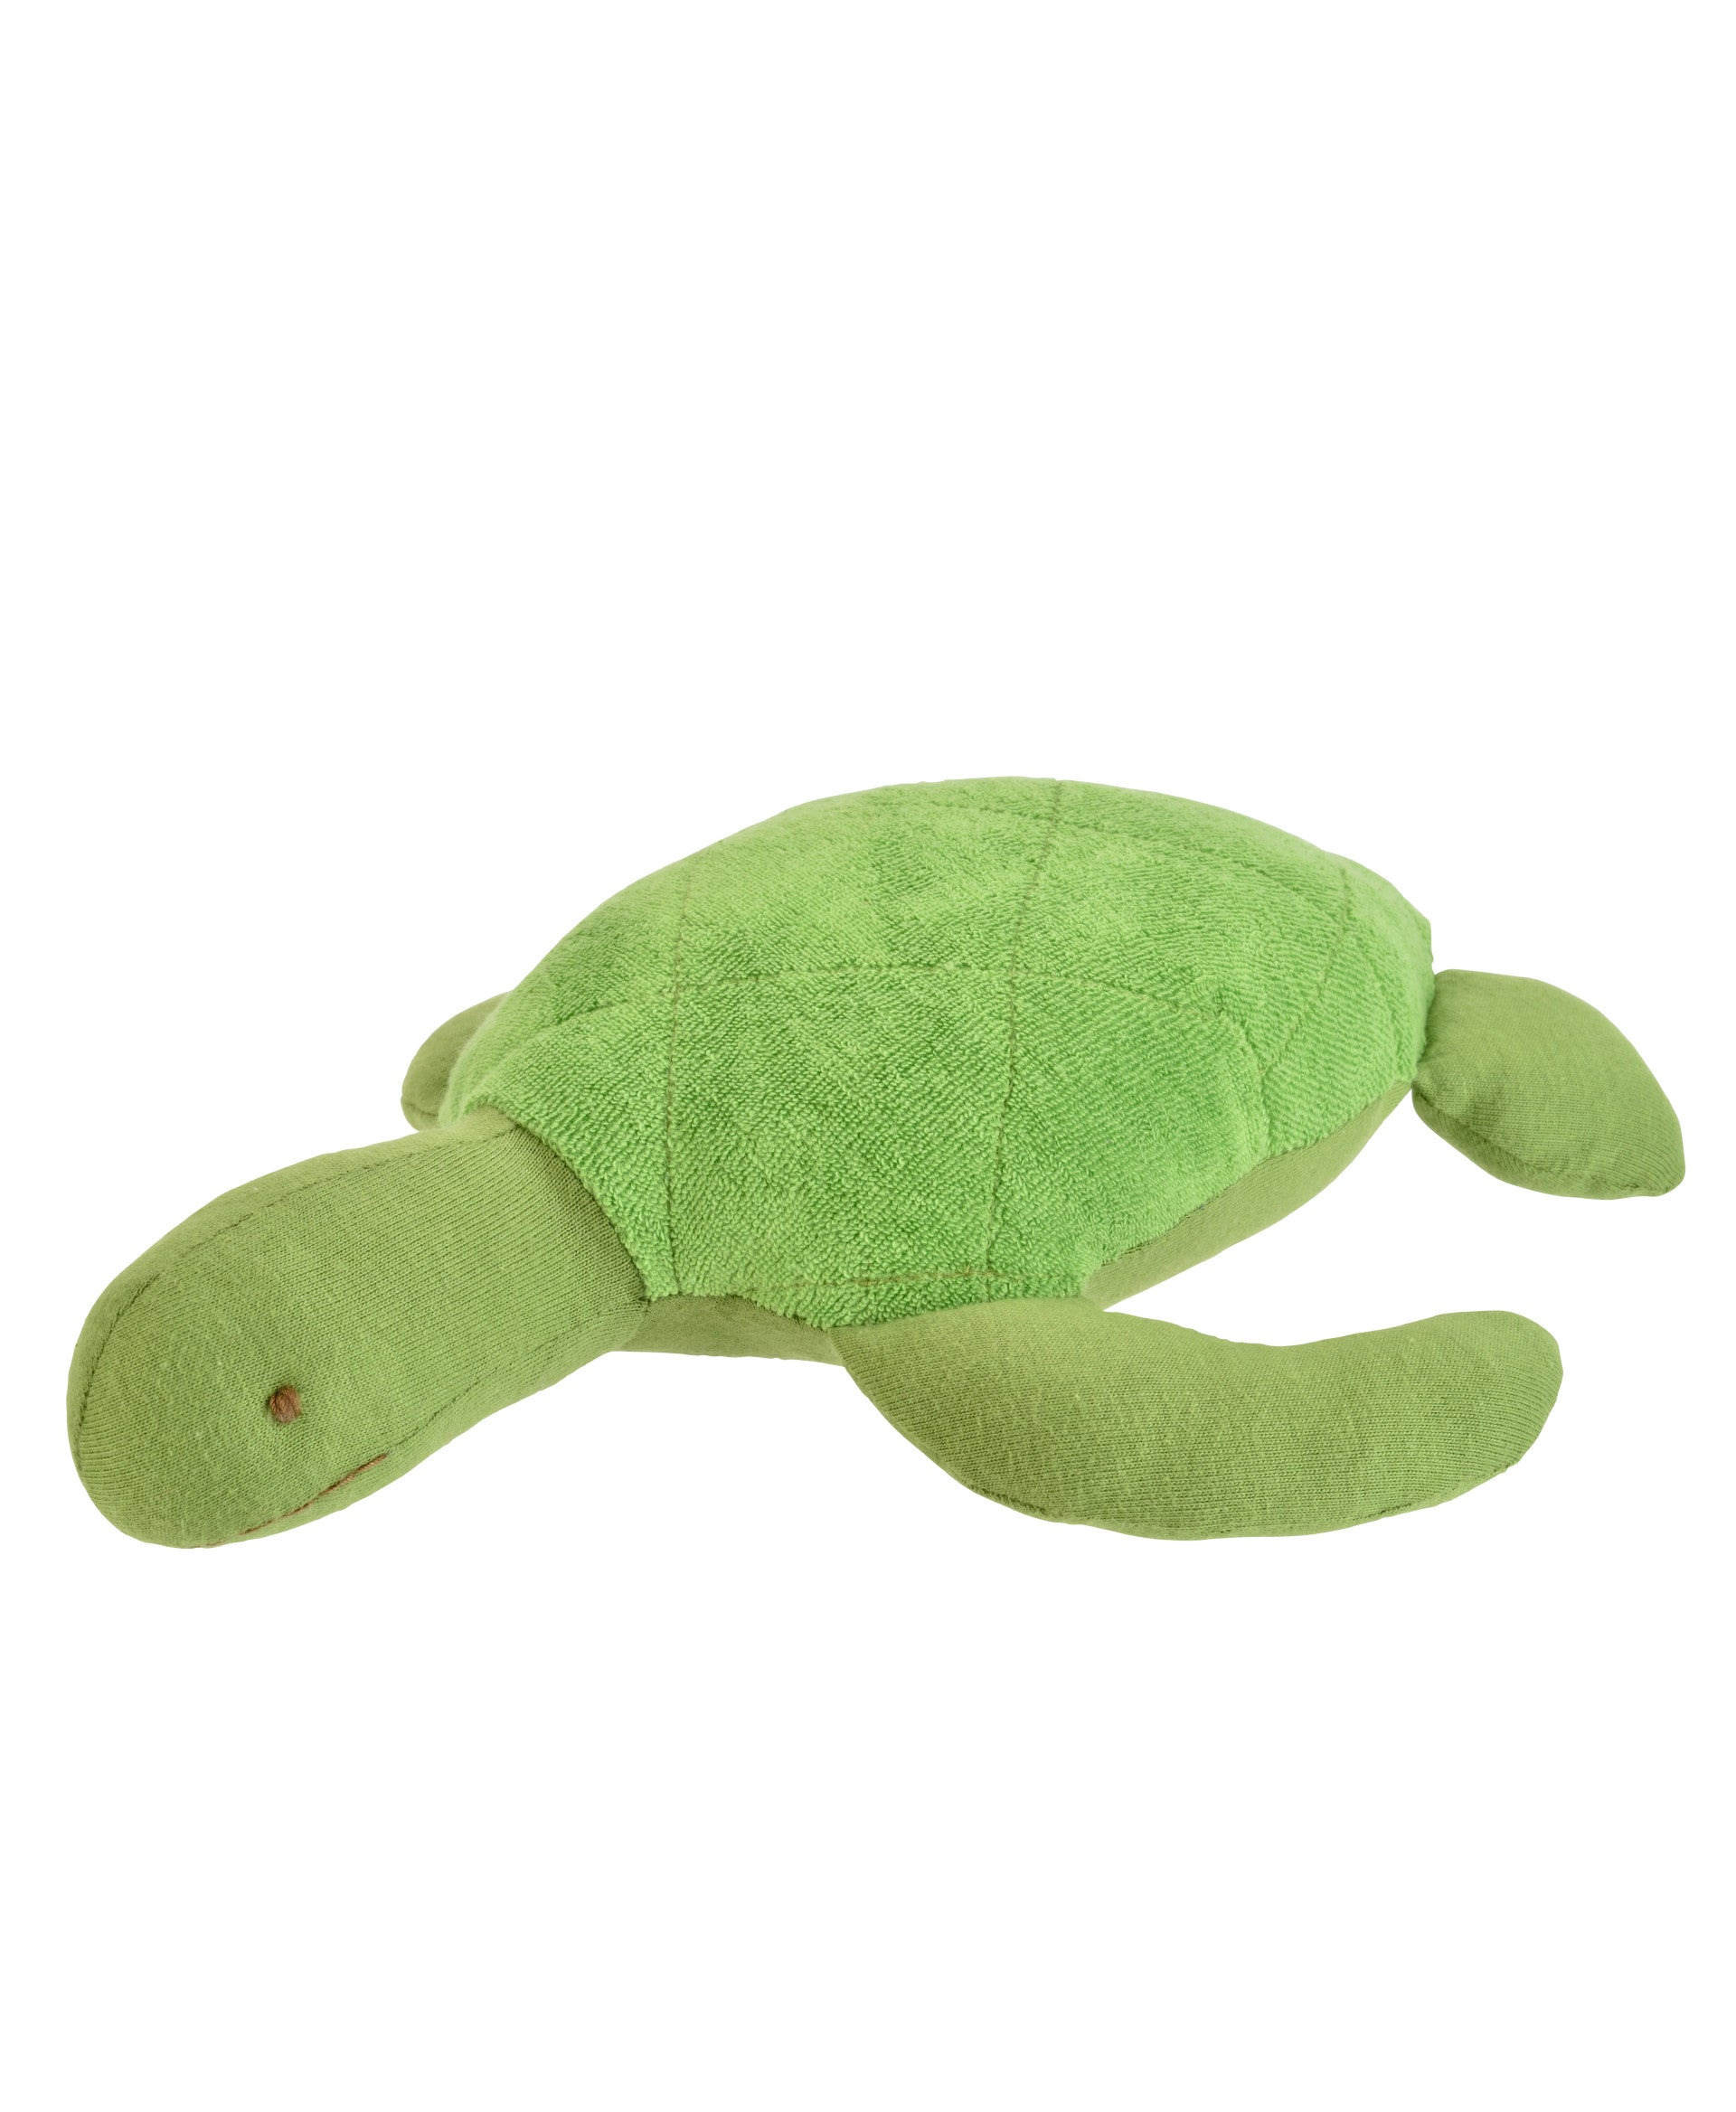 Stuffed Sea Turtle Organic Cotton Baby Toy Under The Nile